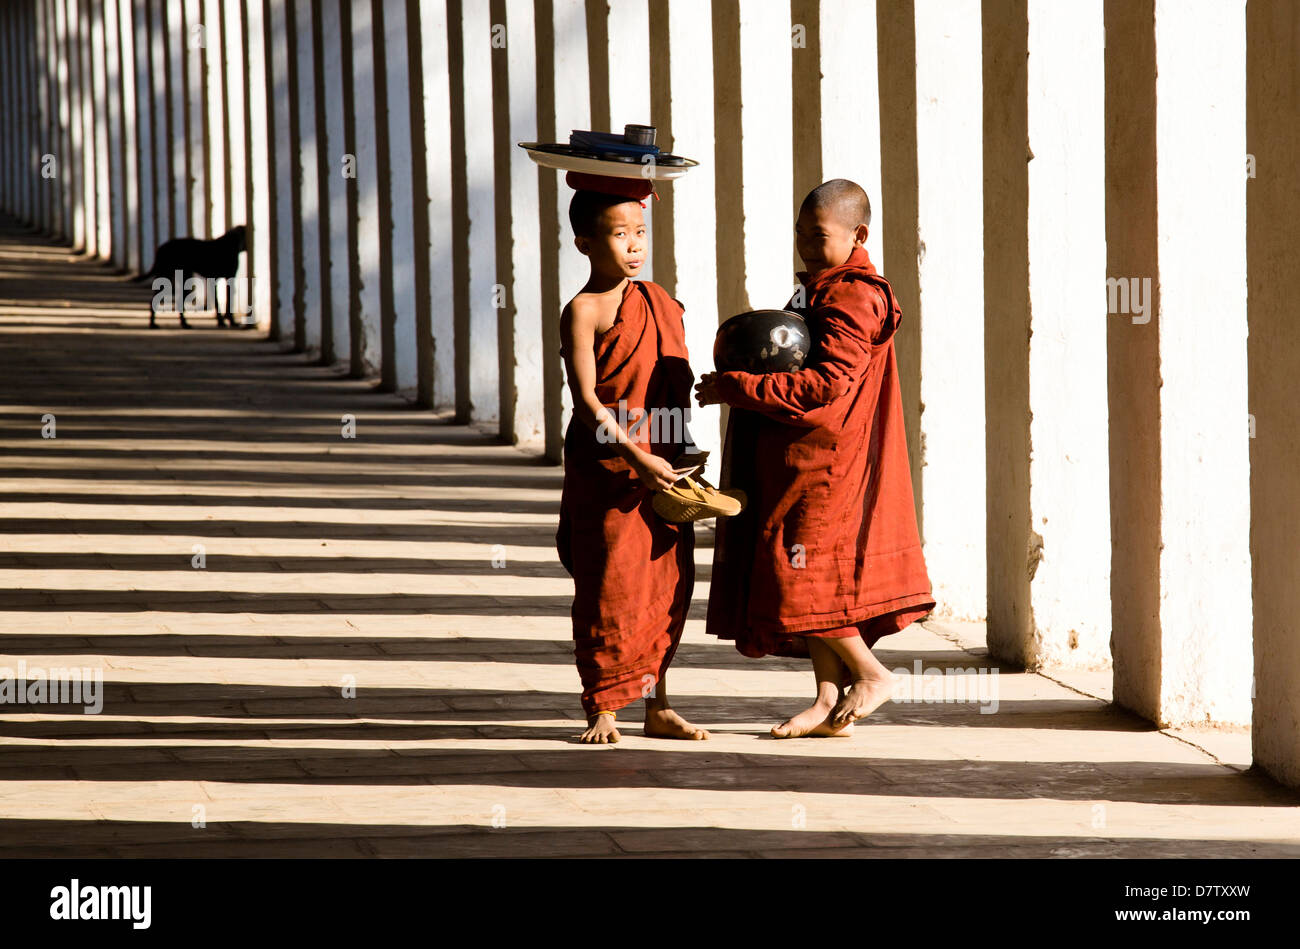 Novice Buddhist monks collecting alms, standing in the shadows of columns at Shwezigon Paya, Nyaung U, Bagan, Burma Stock Photo